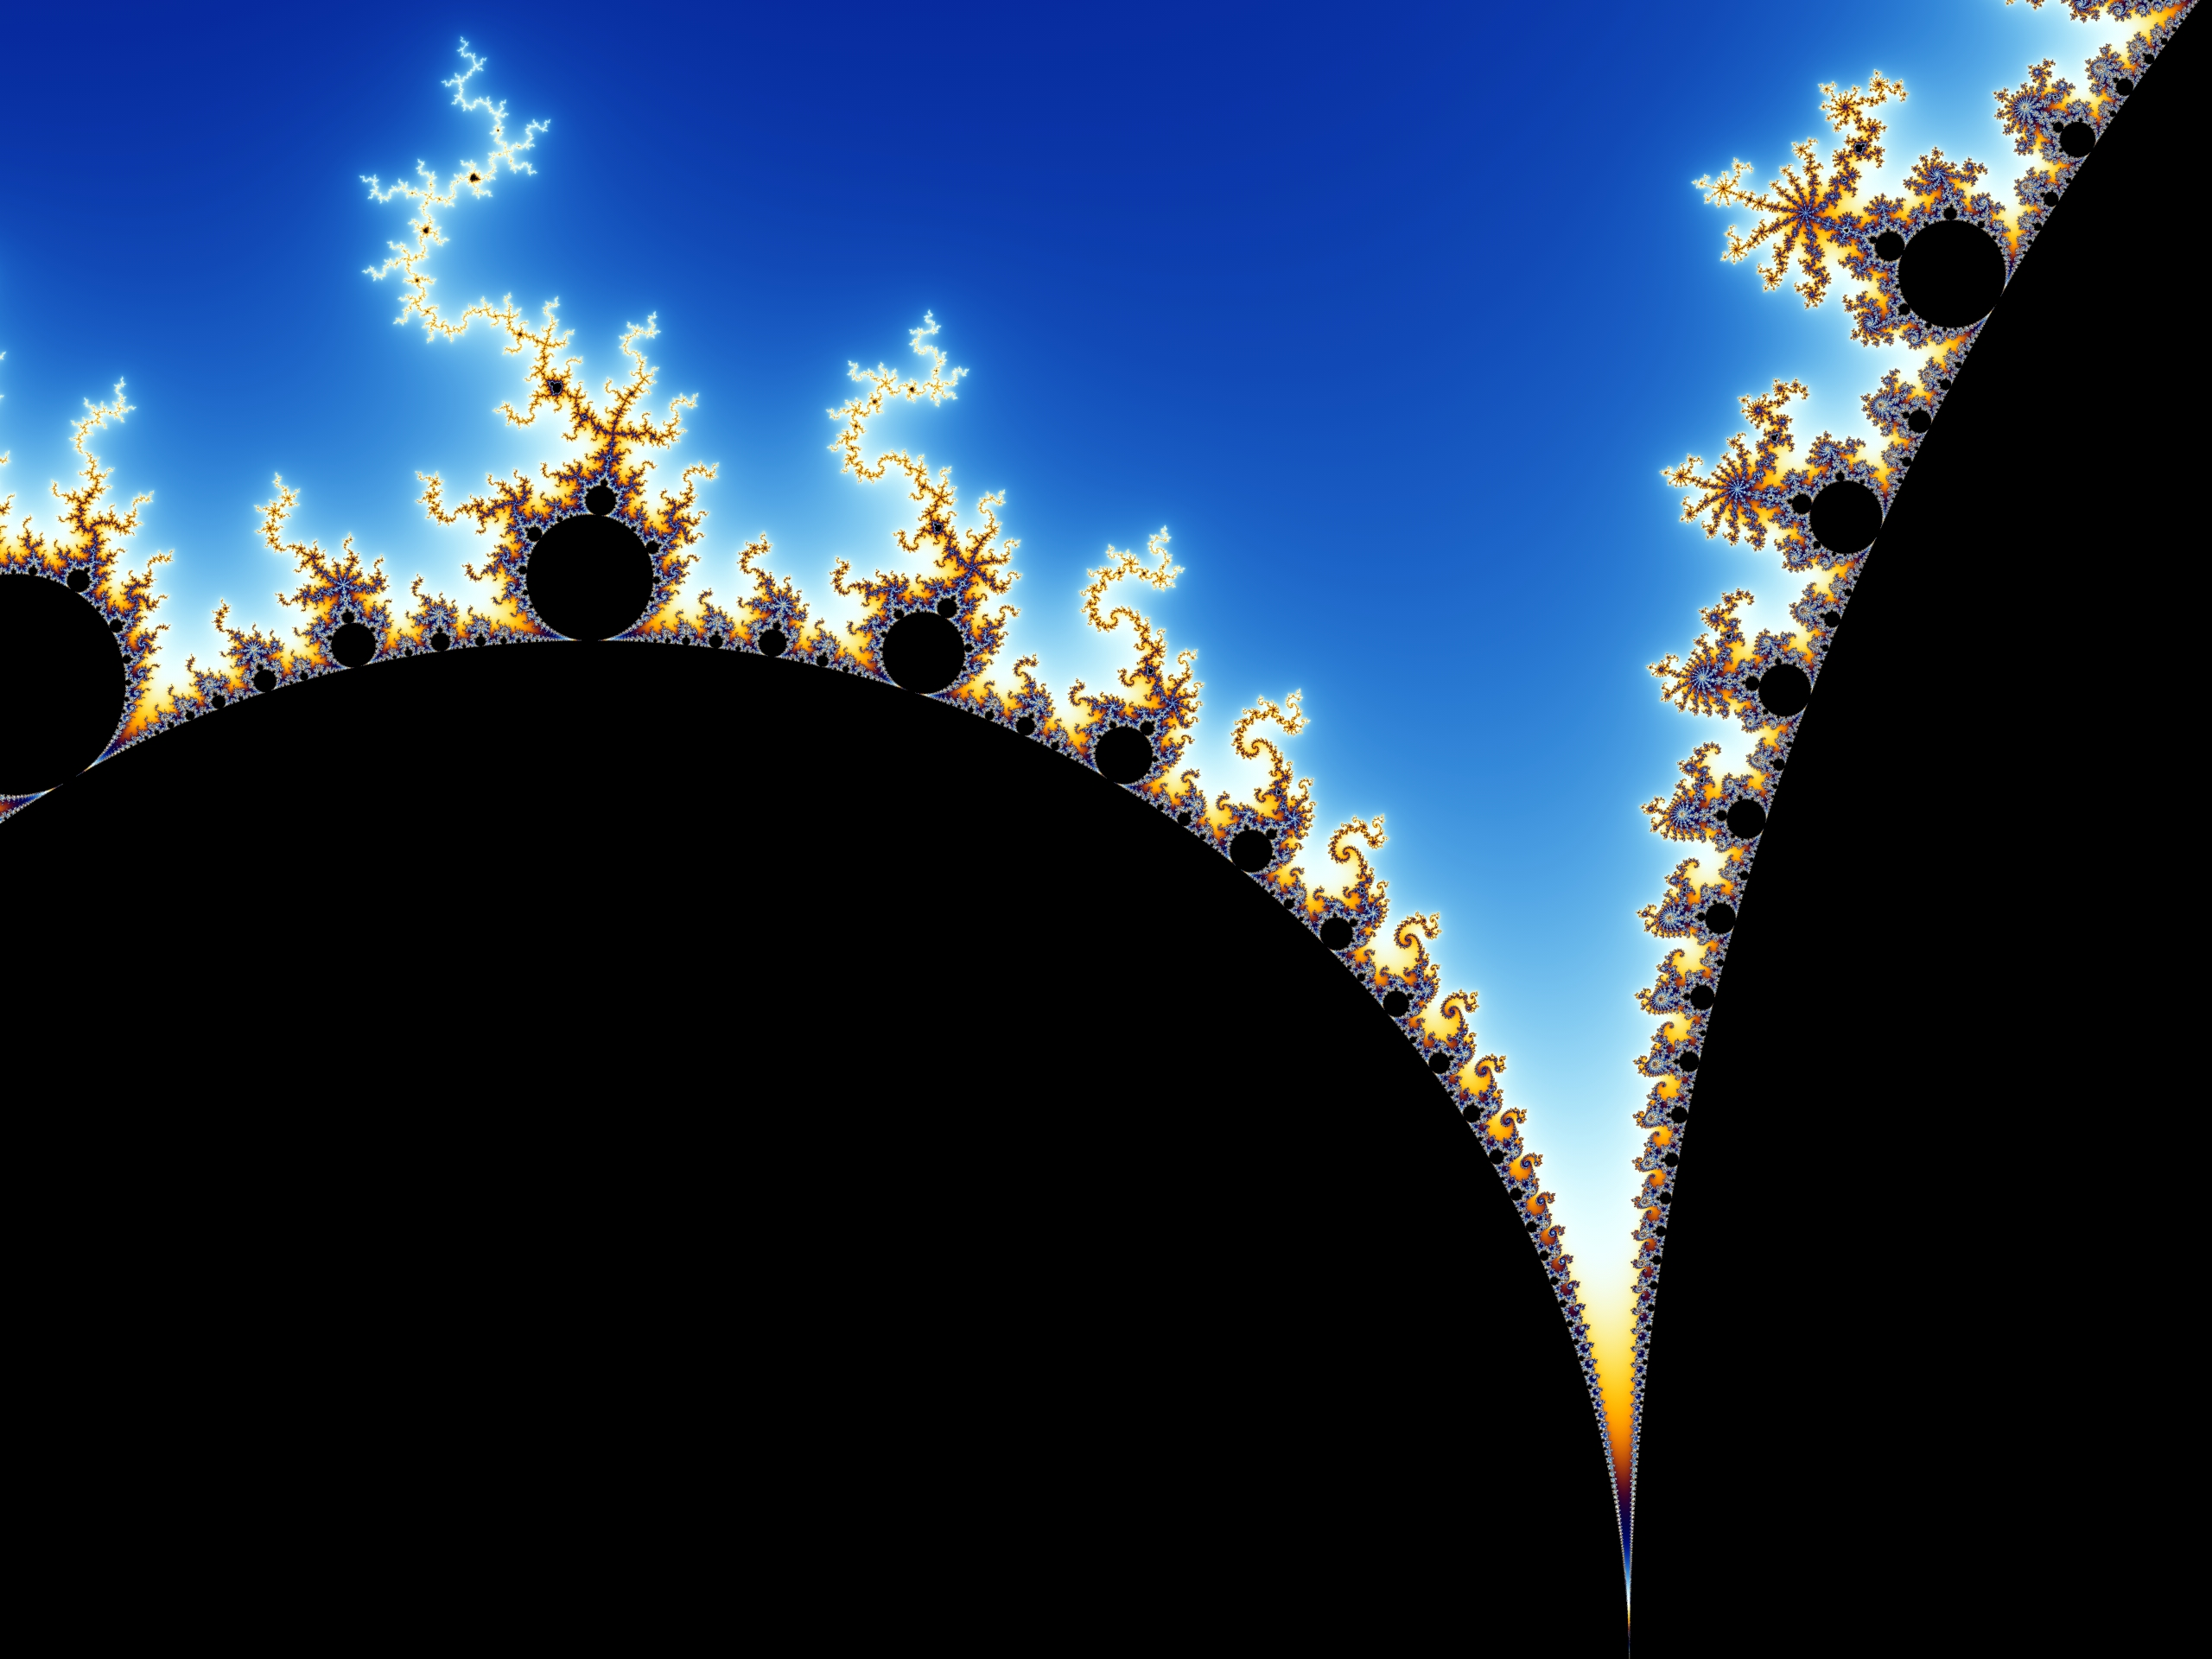 An image of the Mandelbrot set.